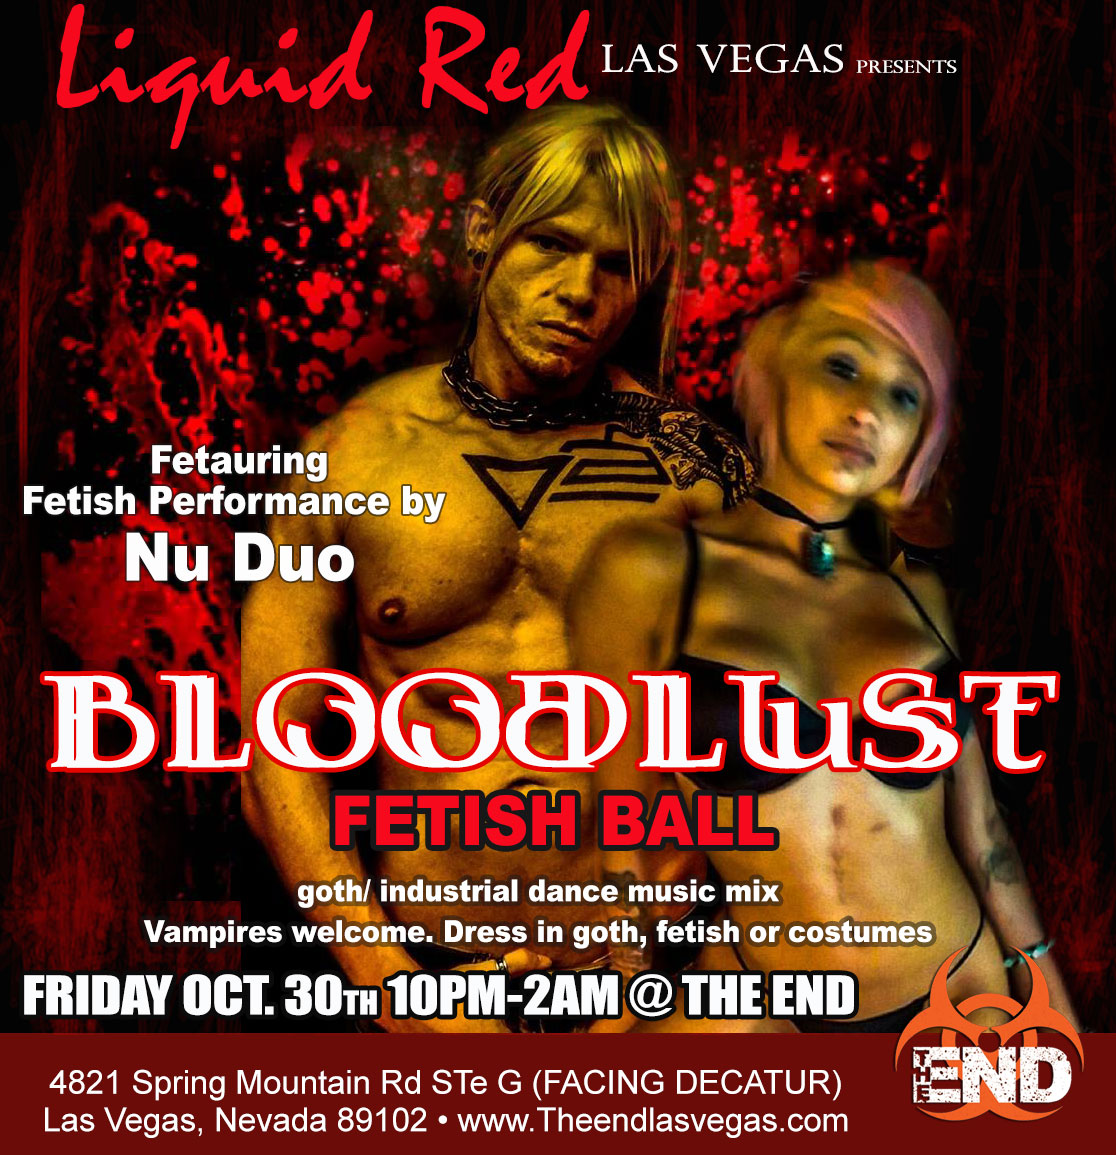 LiquidRed-oct-bloodlust